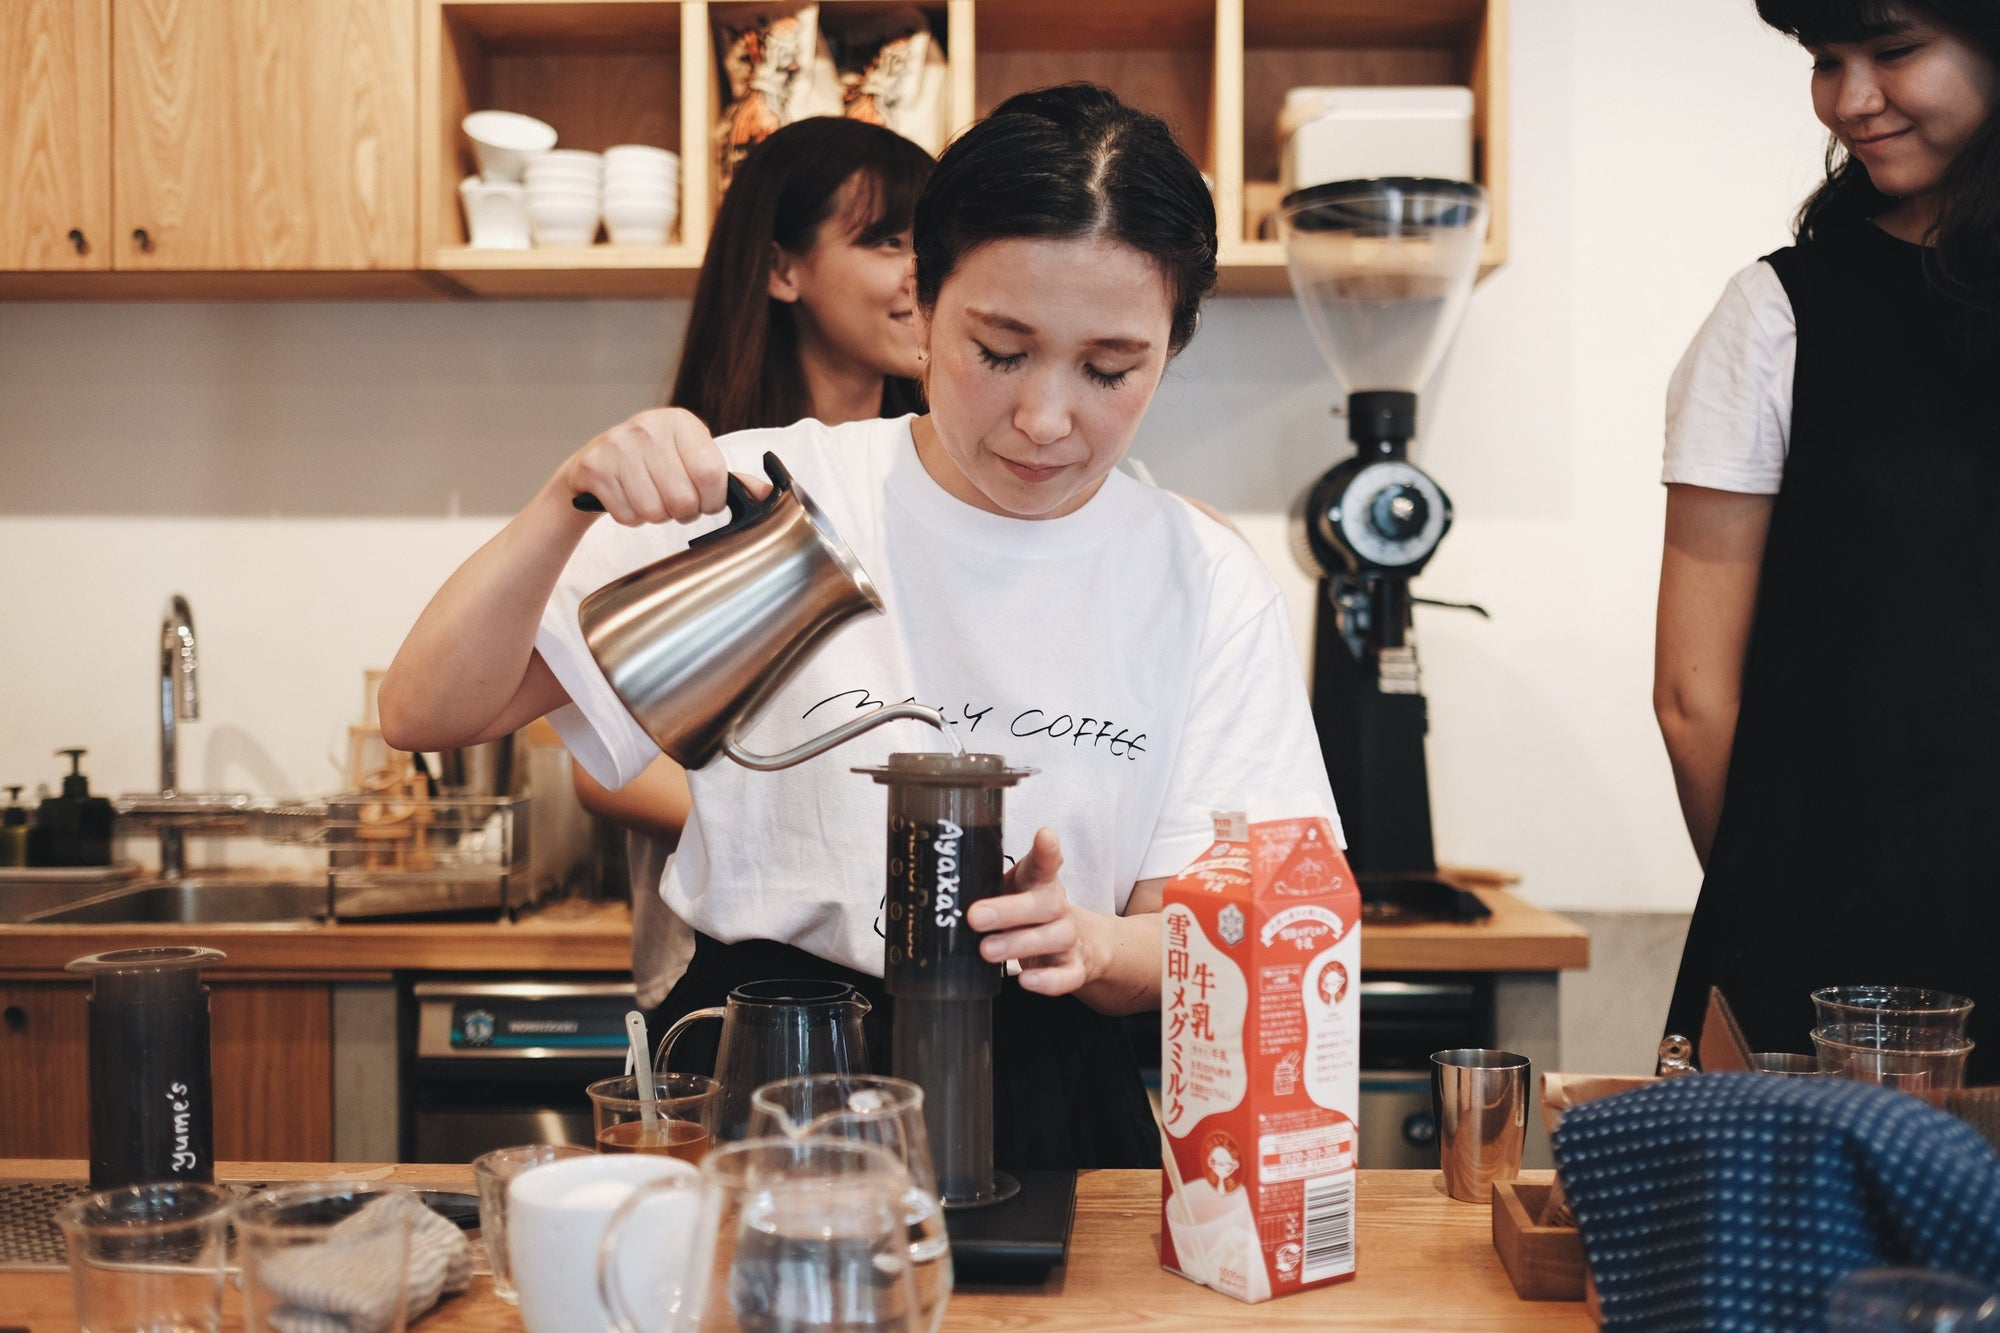 Guest Barista/ Aeropress Seminar with MANLY COFFEE Event Photo Report